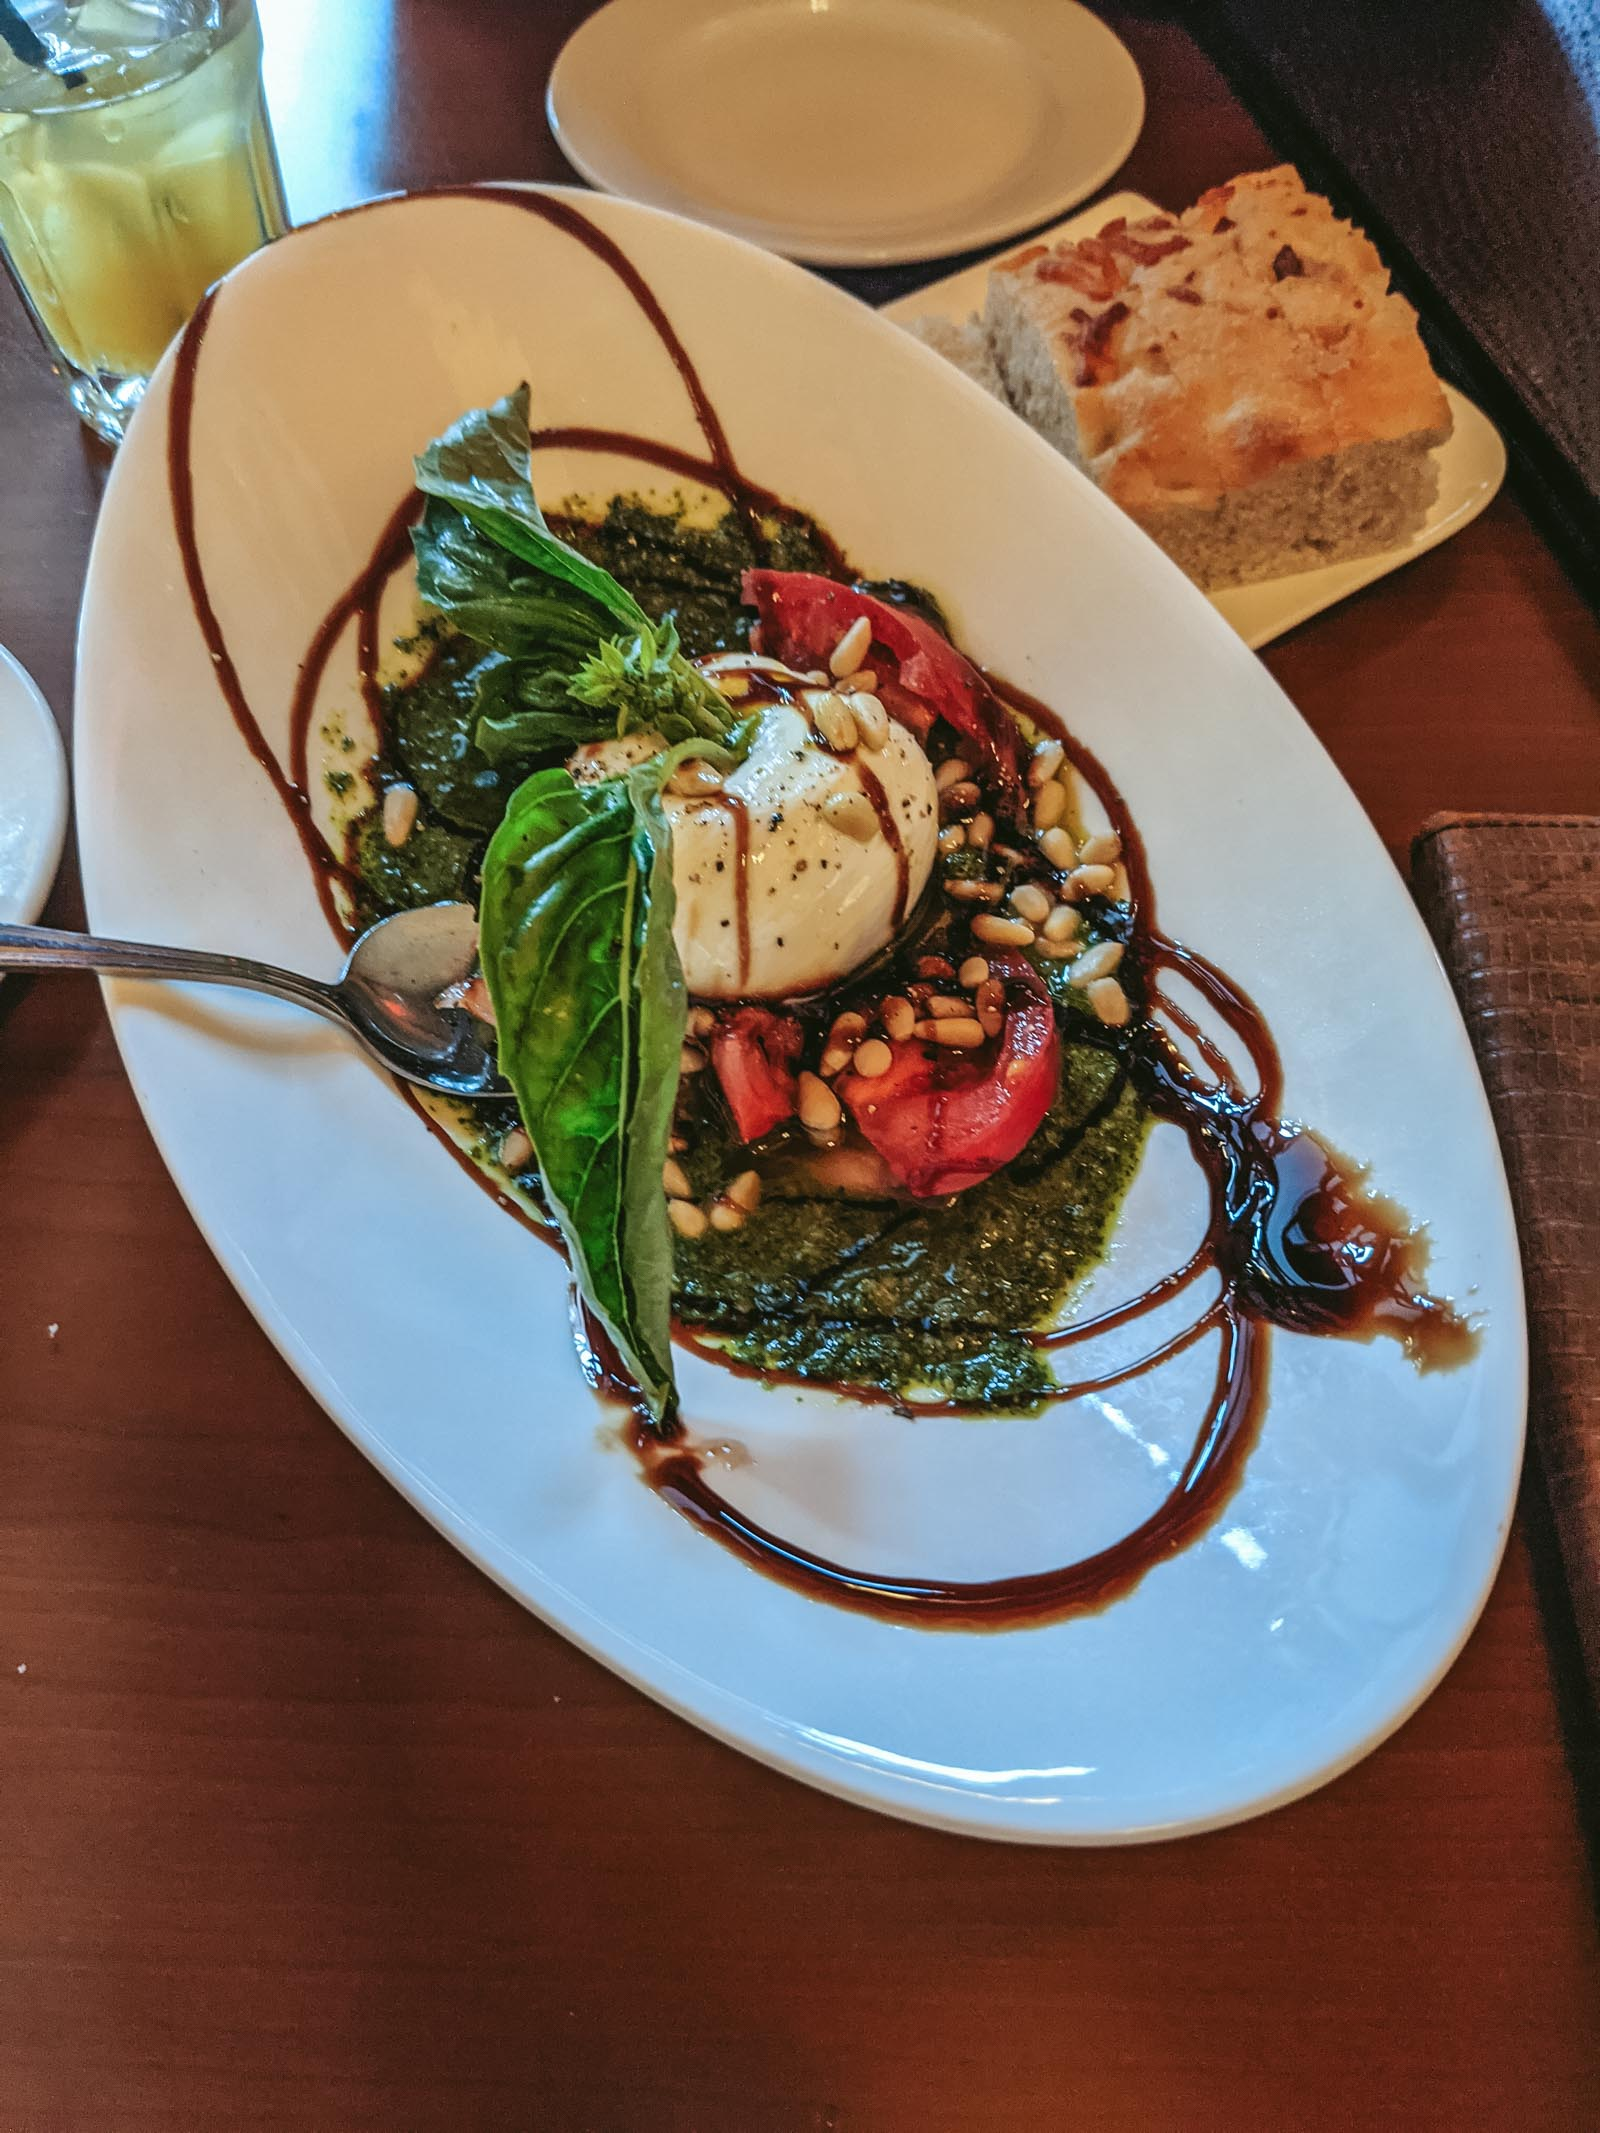 Salad from Switchback Grille in Zion National Park